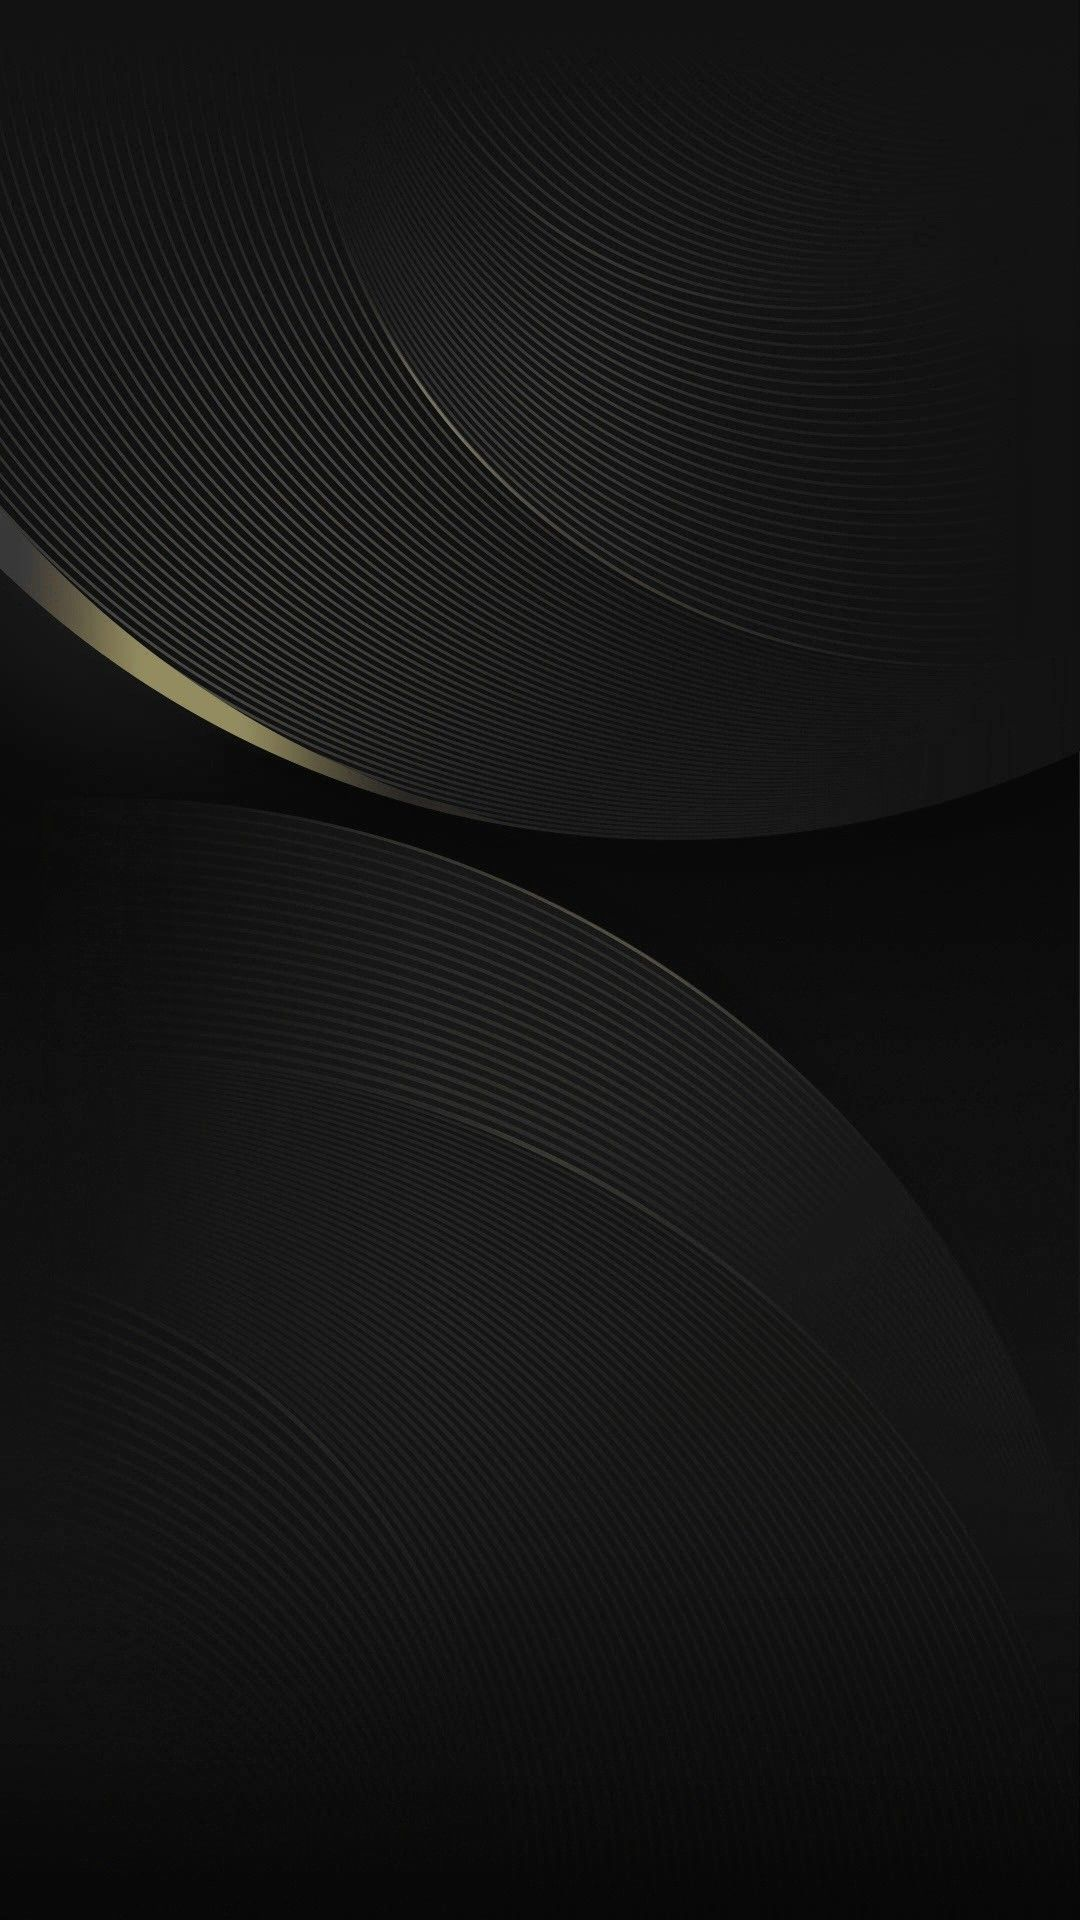 Pin By Aurityff On Tj Abstract Iphone Wallpaper Backgrounds Phone Wallpapers Textured Wallpaper